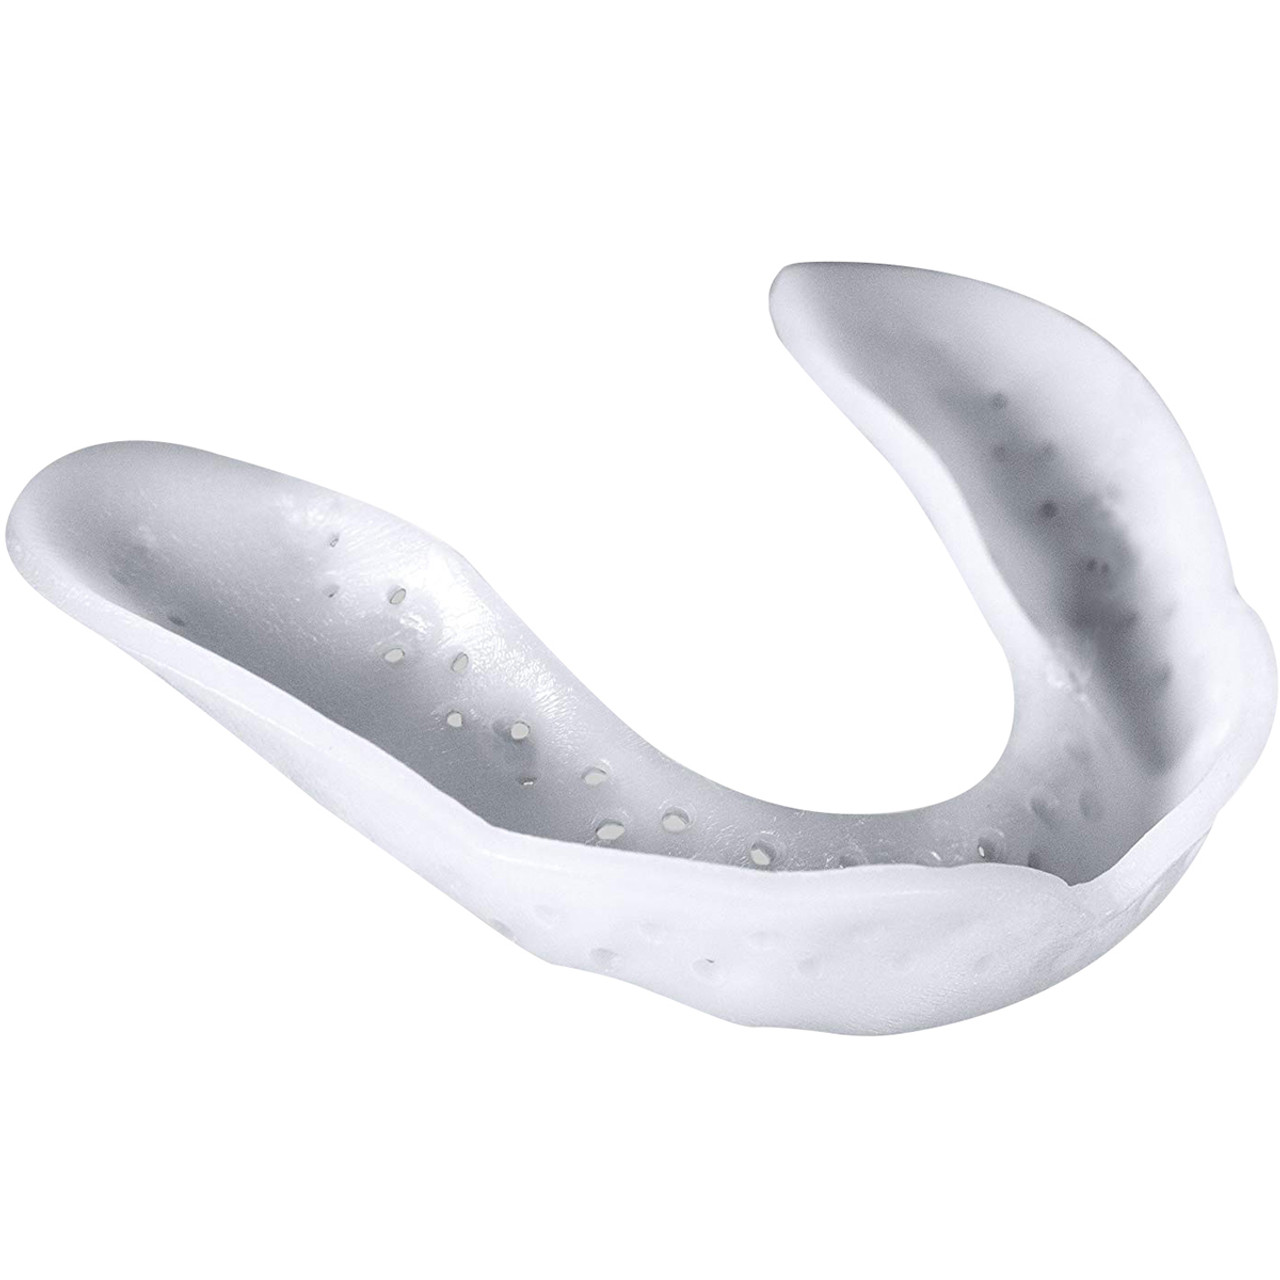 NEW Sisu Mouthguard SOVA Comfort Tooth Teeth Grinding Mouth Night Guard NO CASE